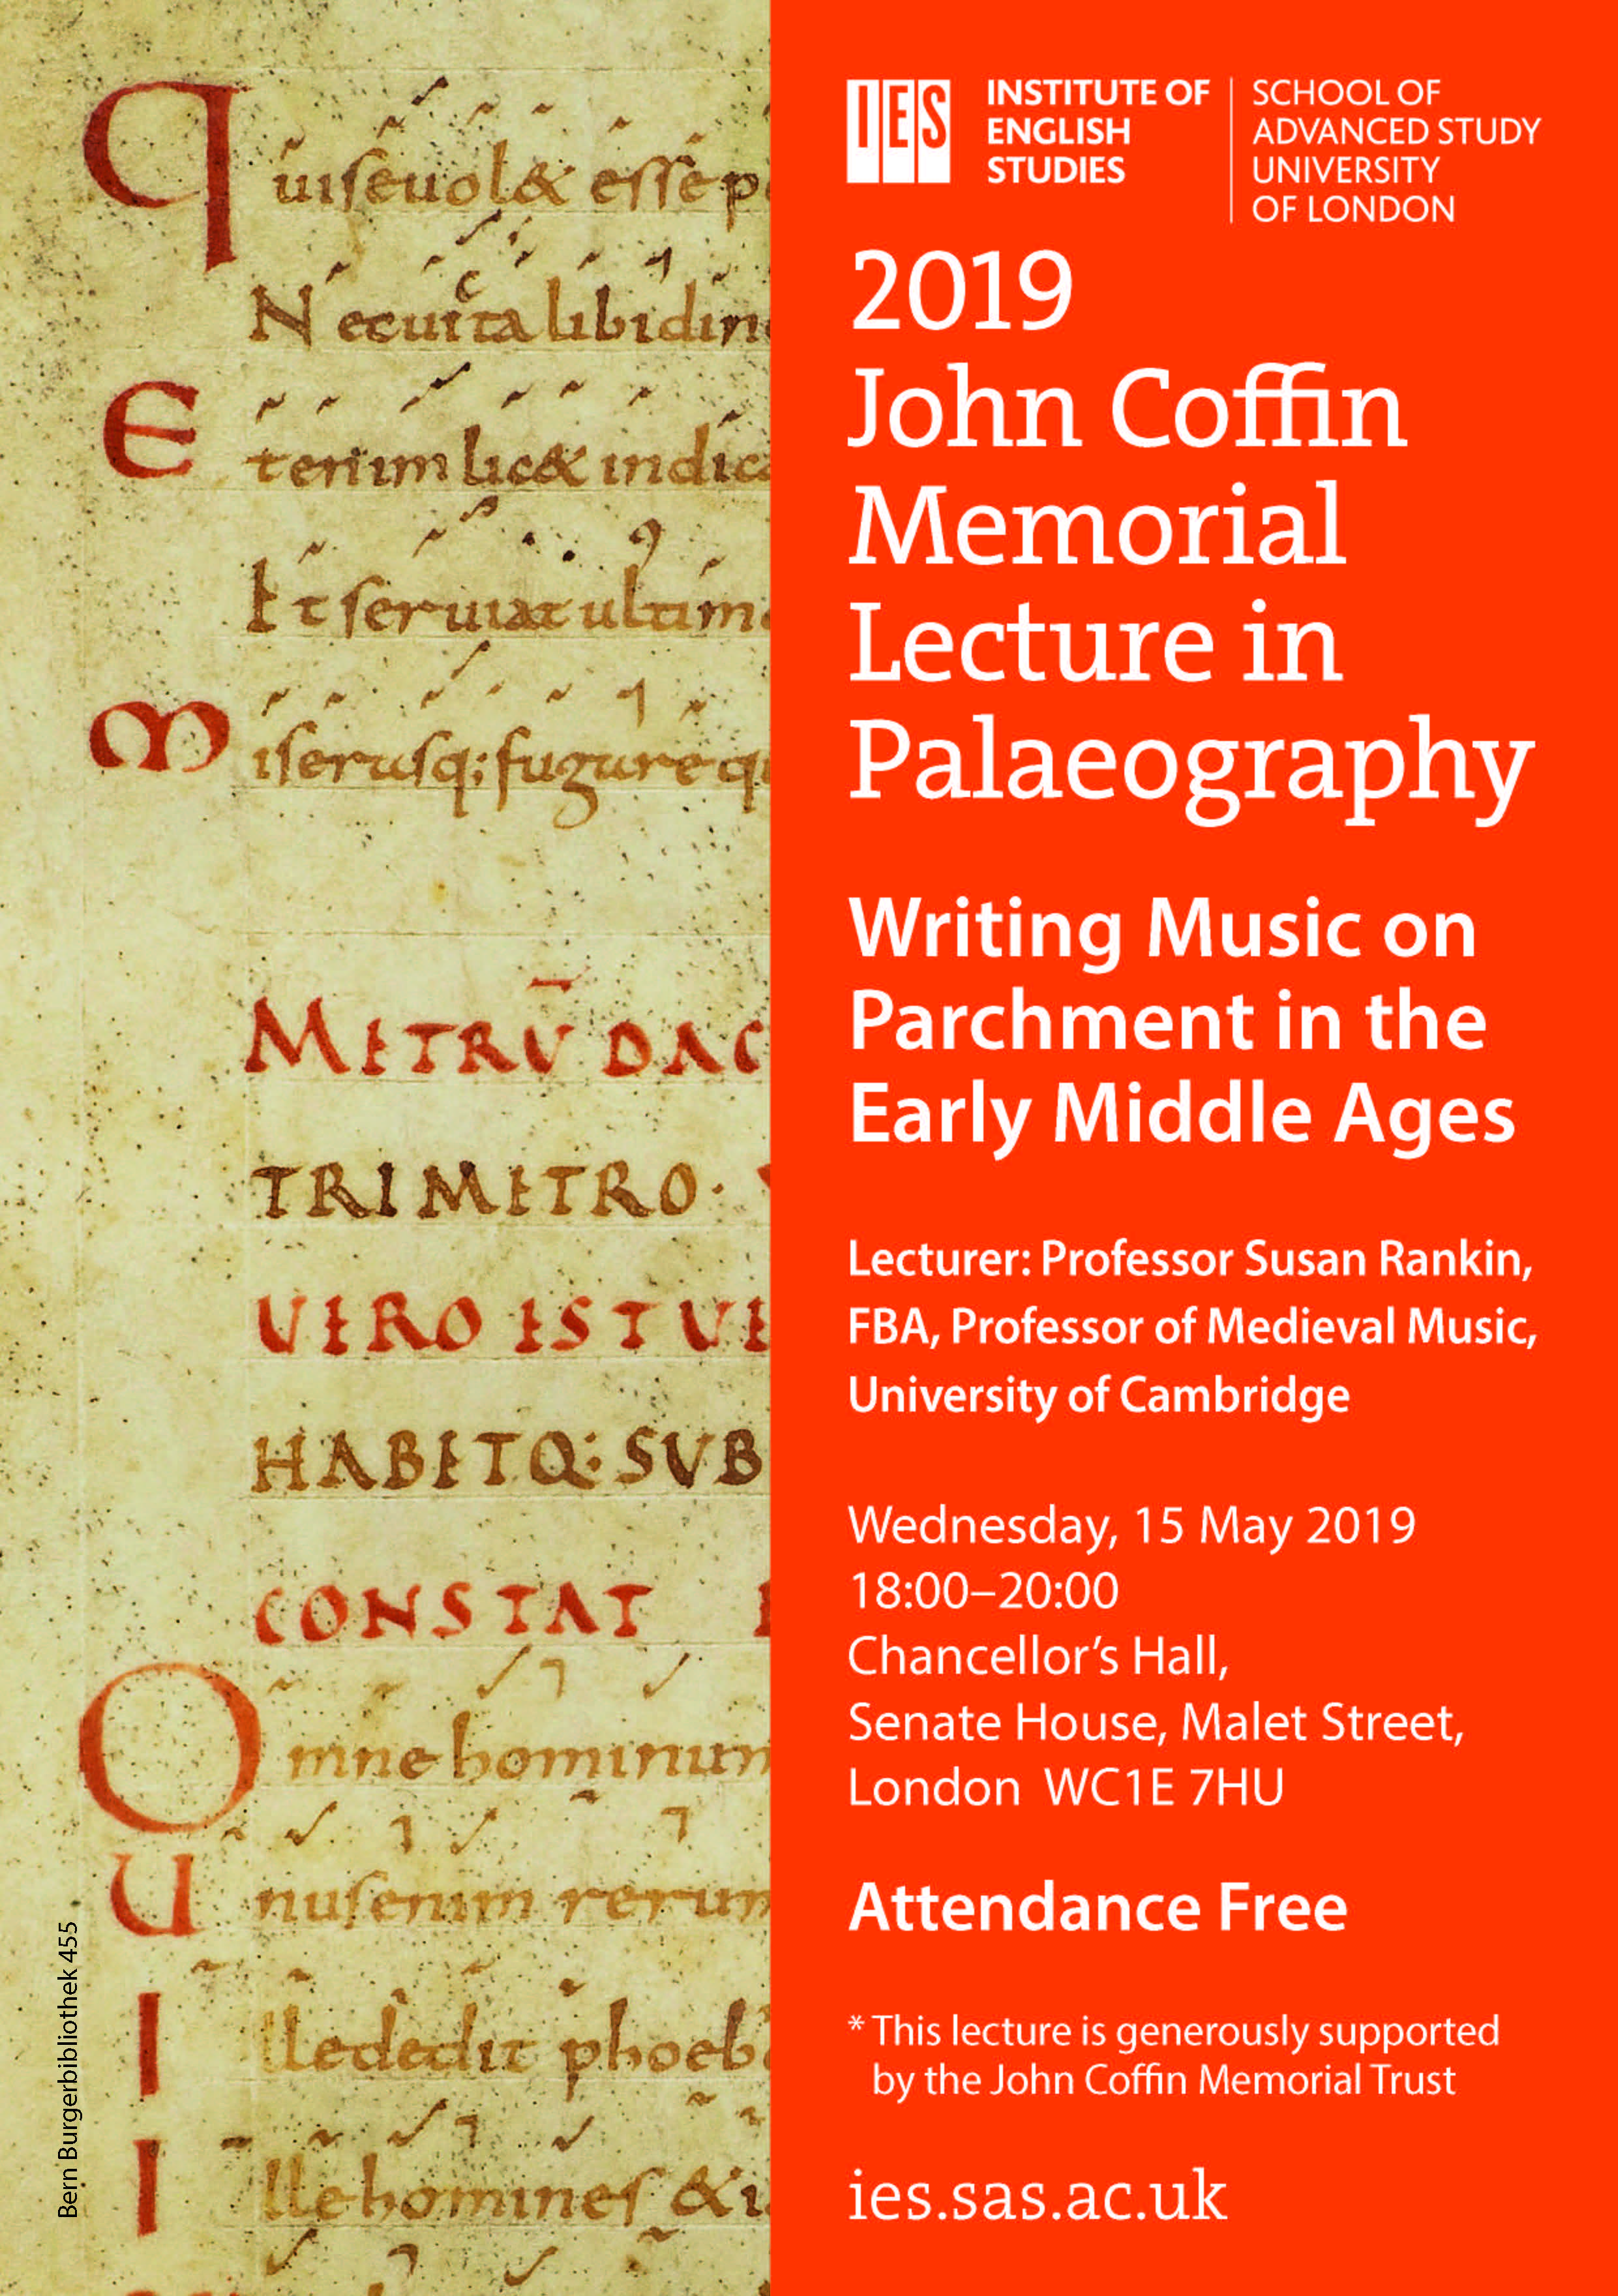 John Coffin Memorial Palaeography Lecture